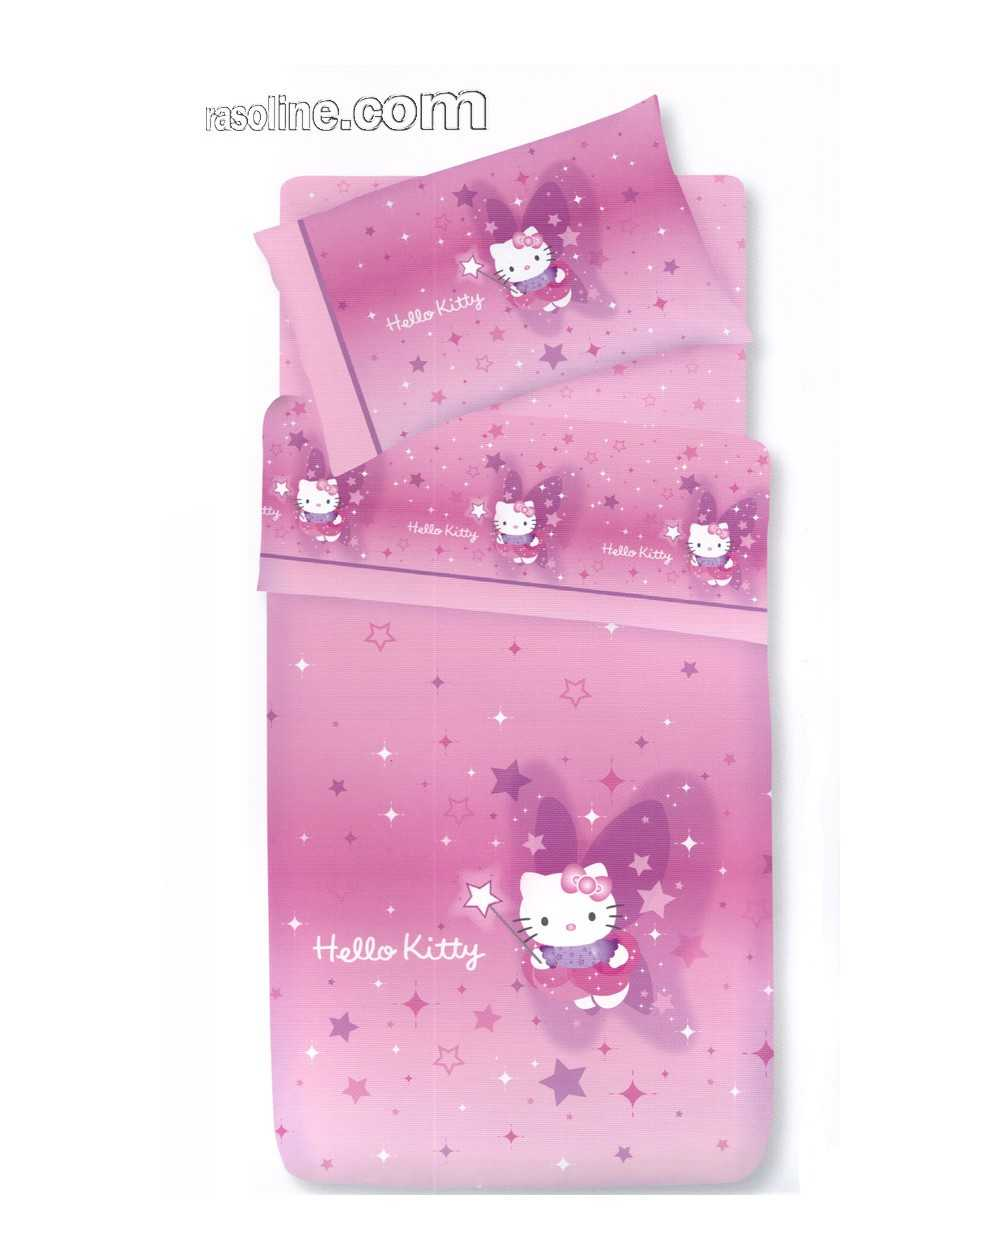 Hello Kitty Fairy Gabel Outlet – Raso line L.F.D. Home